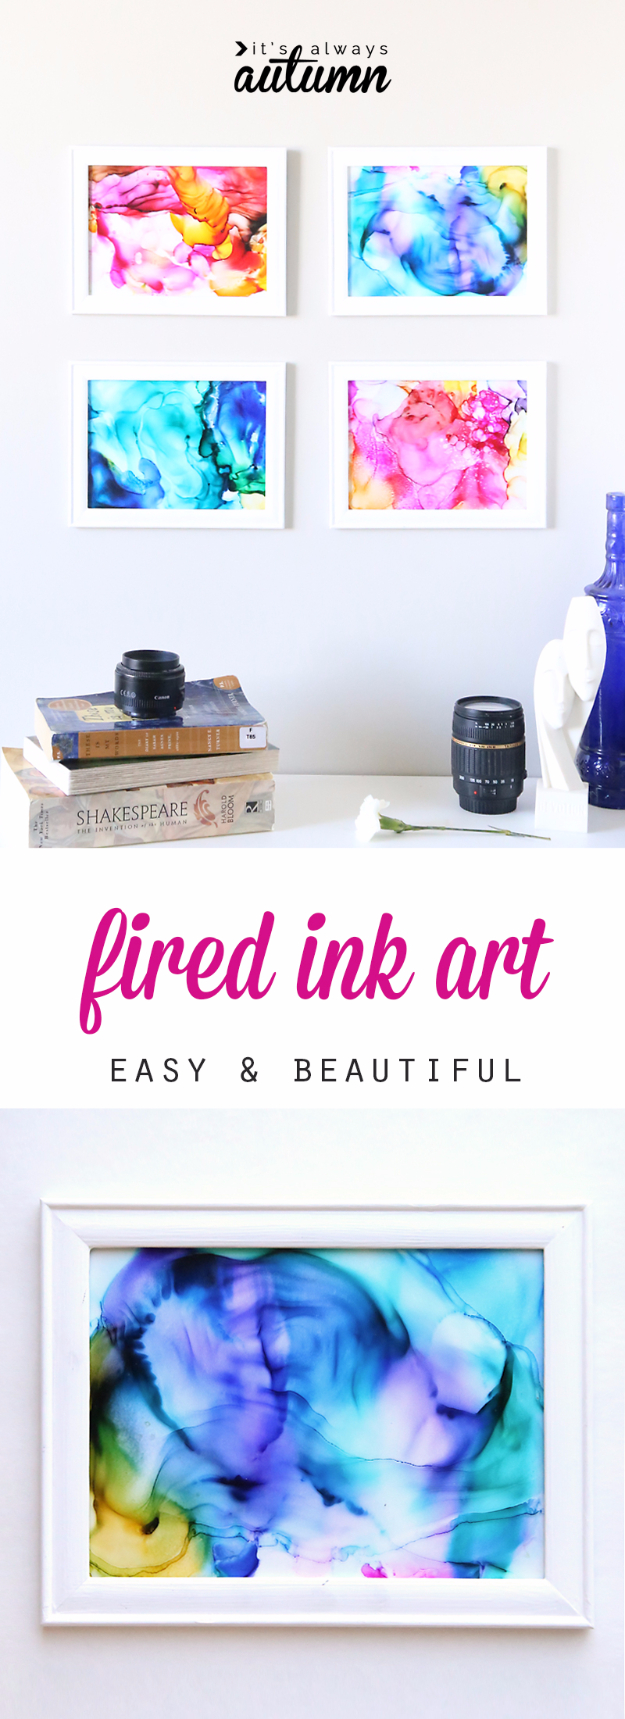 DIY Wall Art Ideas for the Bedroom - Fired Ink Art - Rustic Decorating Projects For Bedroom, Brilliant Wall Art Projects, Creative Wall Art, Do It Yourself Crafts, Easy Wall Art, Bedroom Decor on a Budget, Bedroom - Paintings, Canvas Art Ideas, Wall Hangings